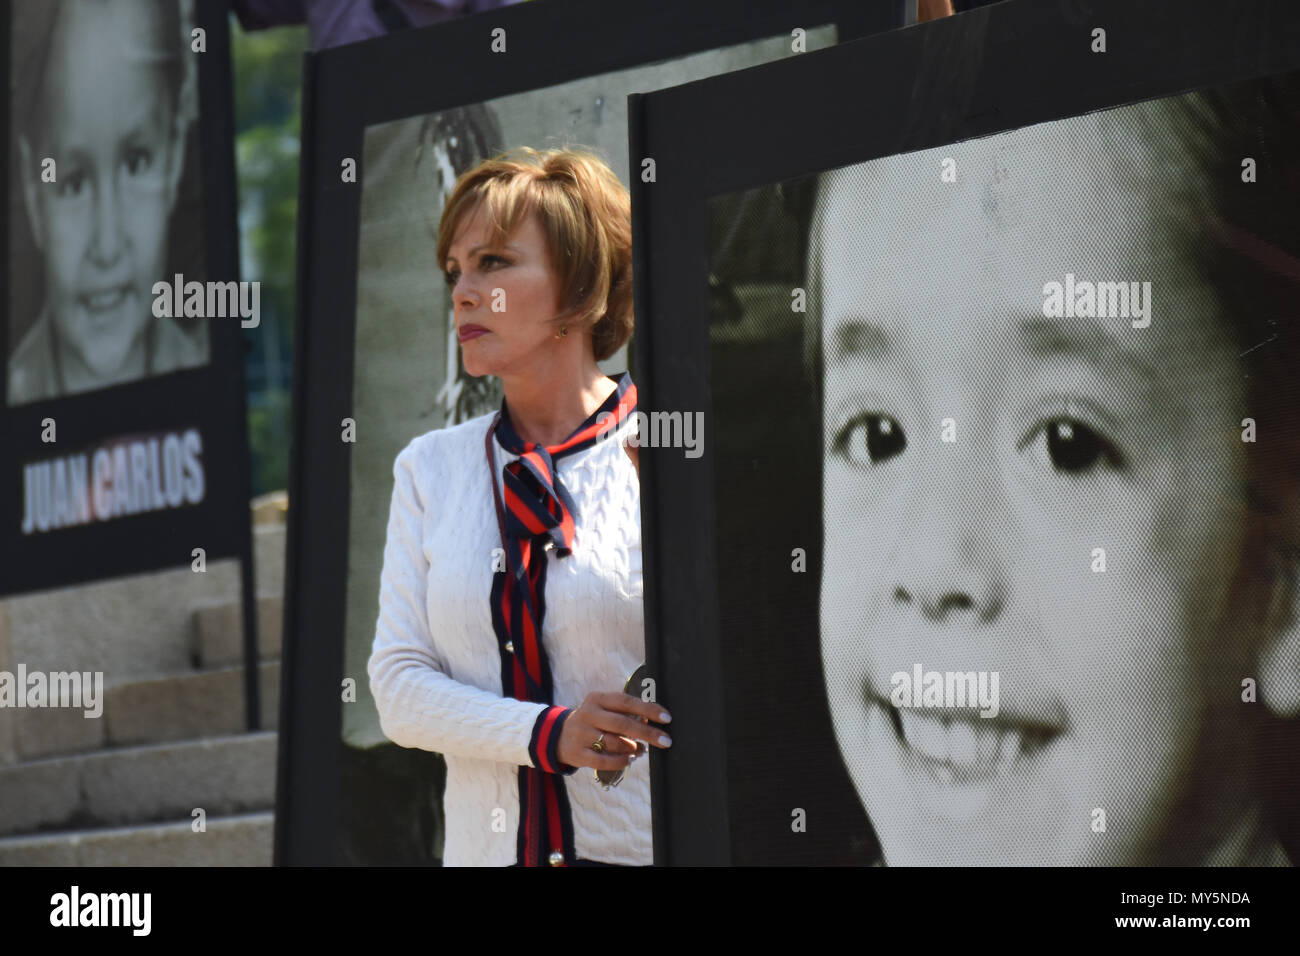 Mexico City, Mexico. 5th June, 2018. Relatives holding portraits of the deceased during the 9th anniversary protest. Demonstration to the impunity and corruption of the Government during the 9 years after the tragedy on 05, June 2009. 25 little girls and 24 little boys died as a result of a fire in the ABC Nursery in Hermosillo, Sonora. Eduardo Bours was the governor. Credit: Carlos Tischler/SOPA Images/ZUMA Wire/Alamy Live News Stock Photo